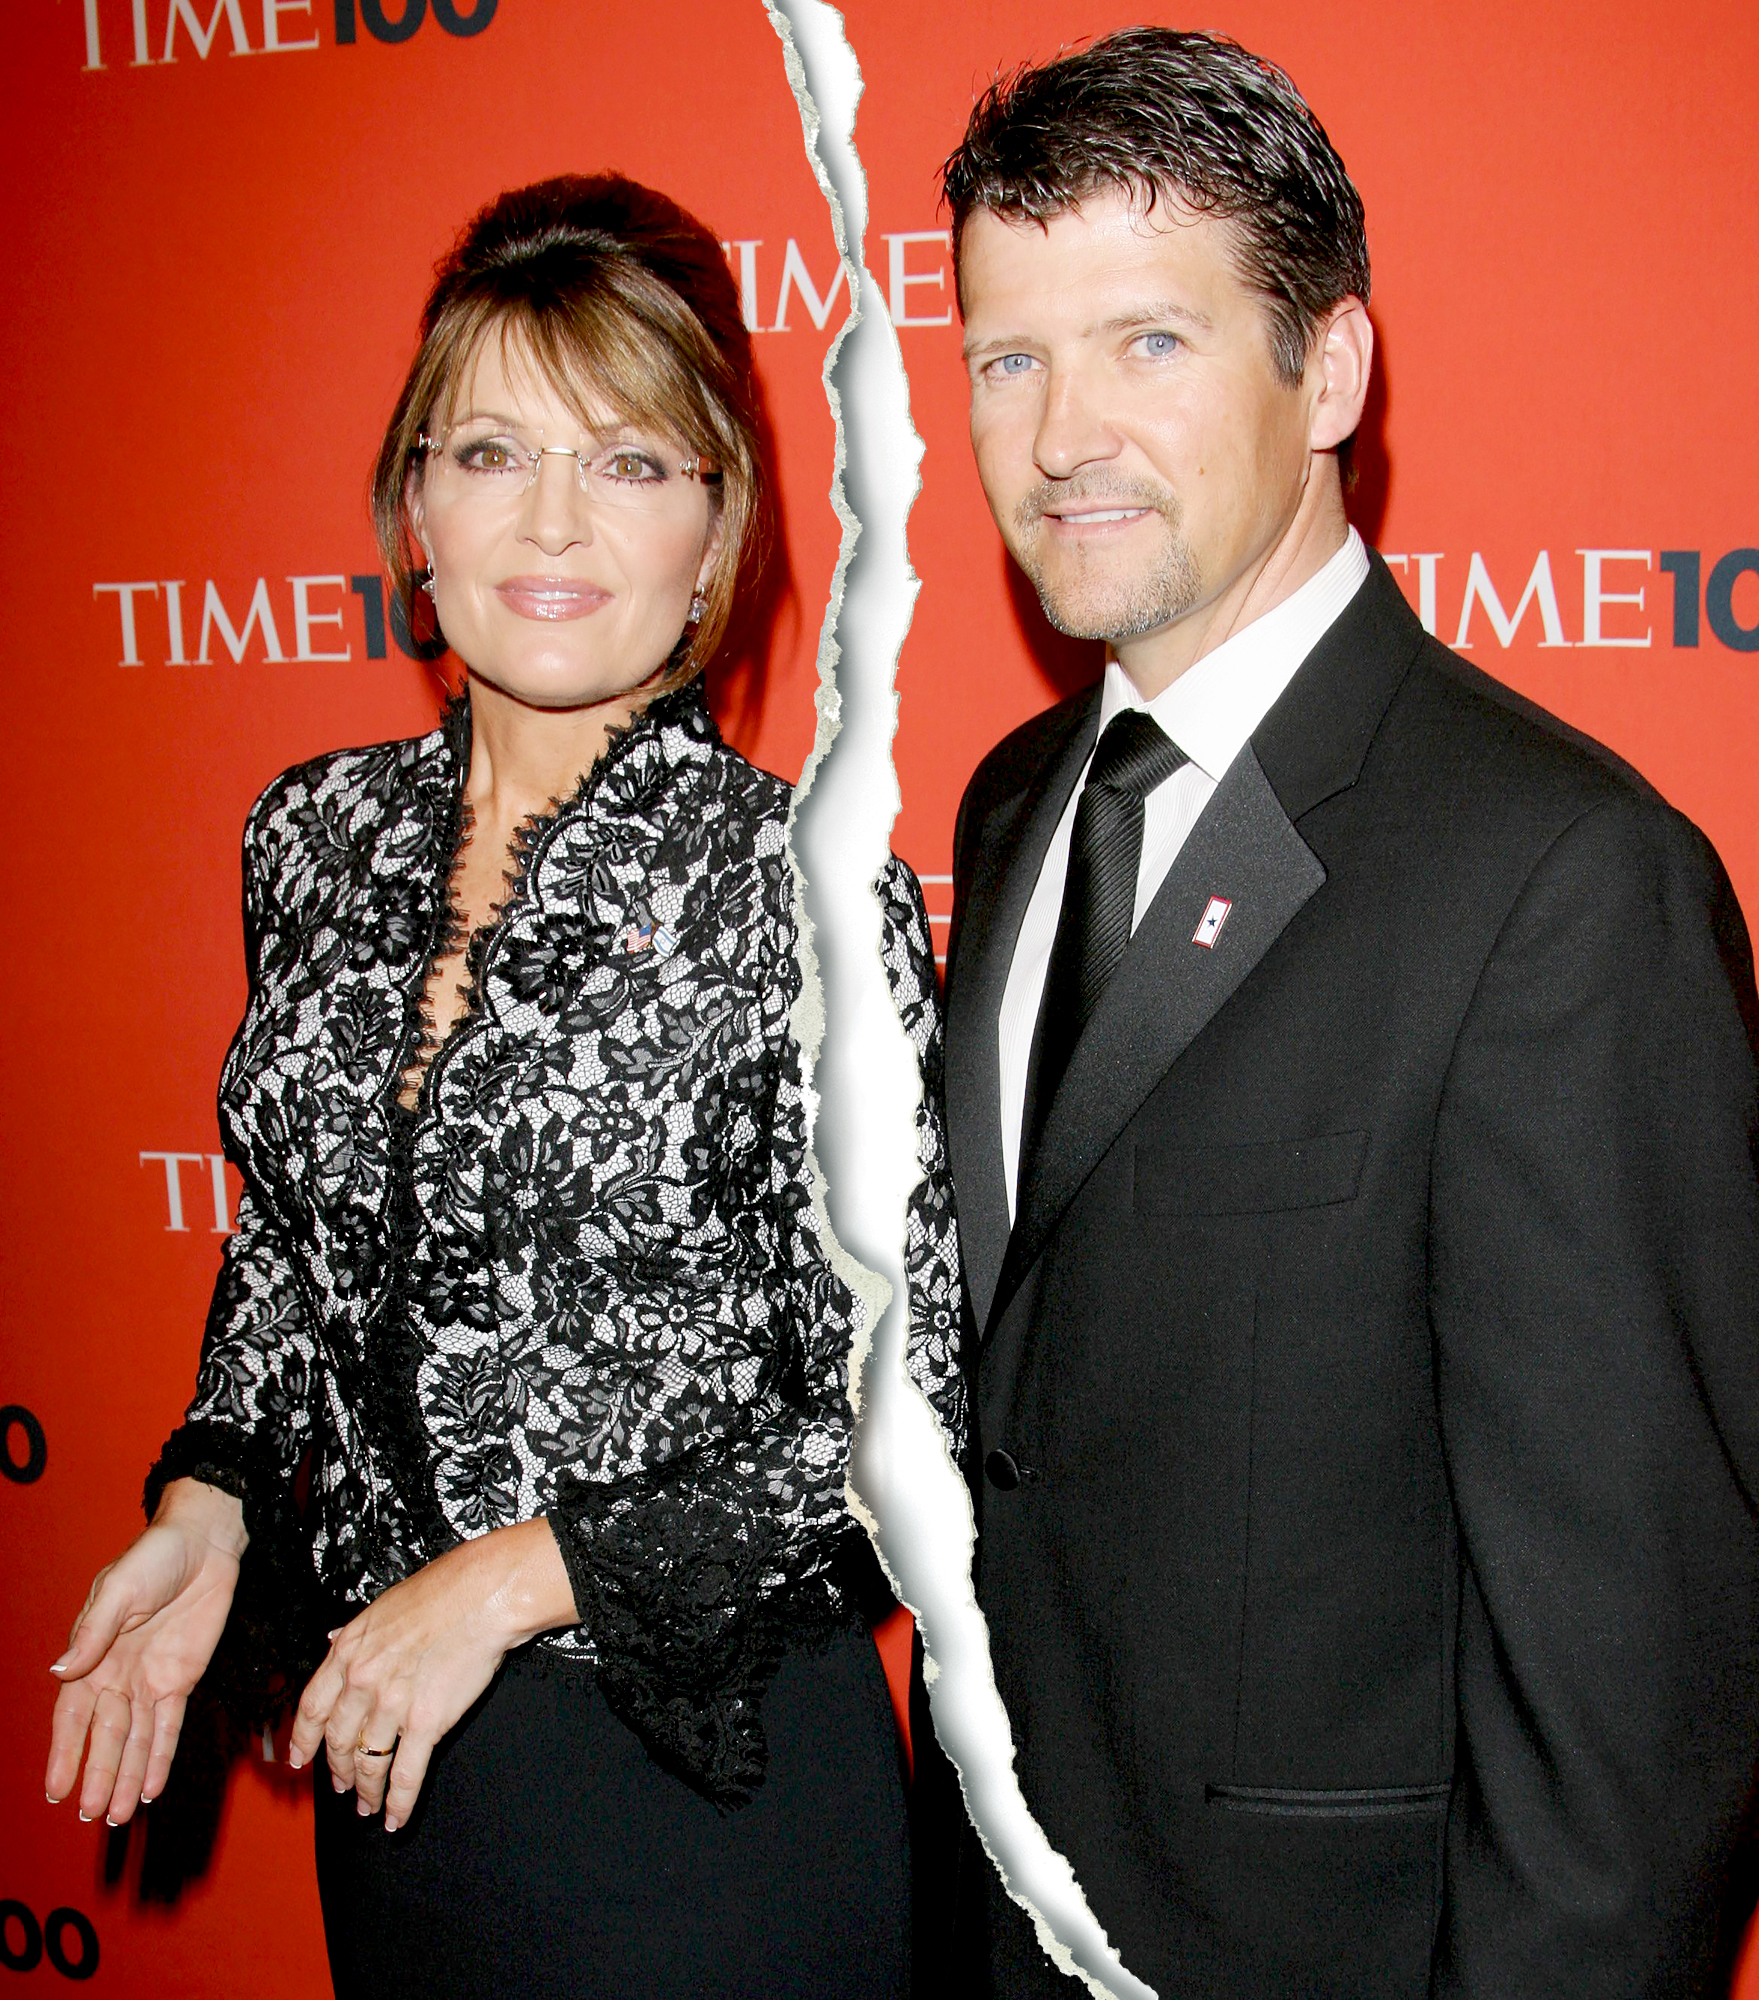 Todd-Palin-files-divorce-Sarah-Palin-split